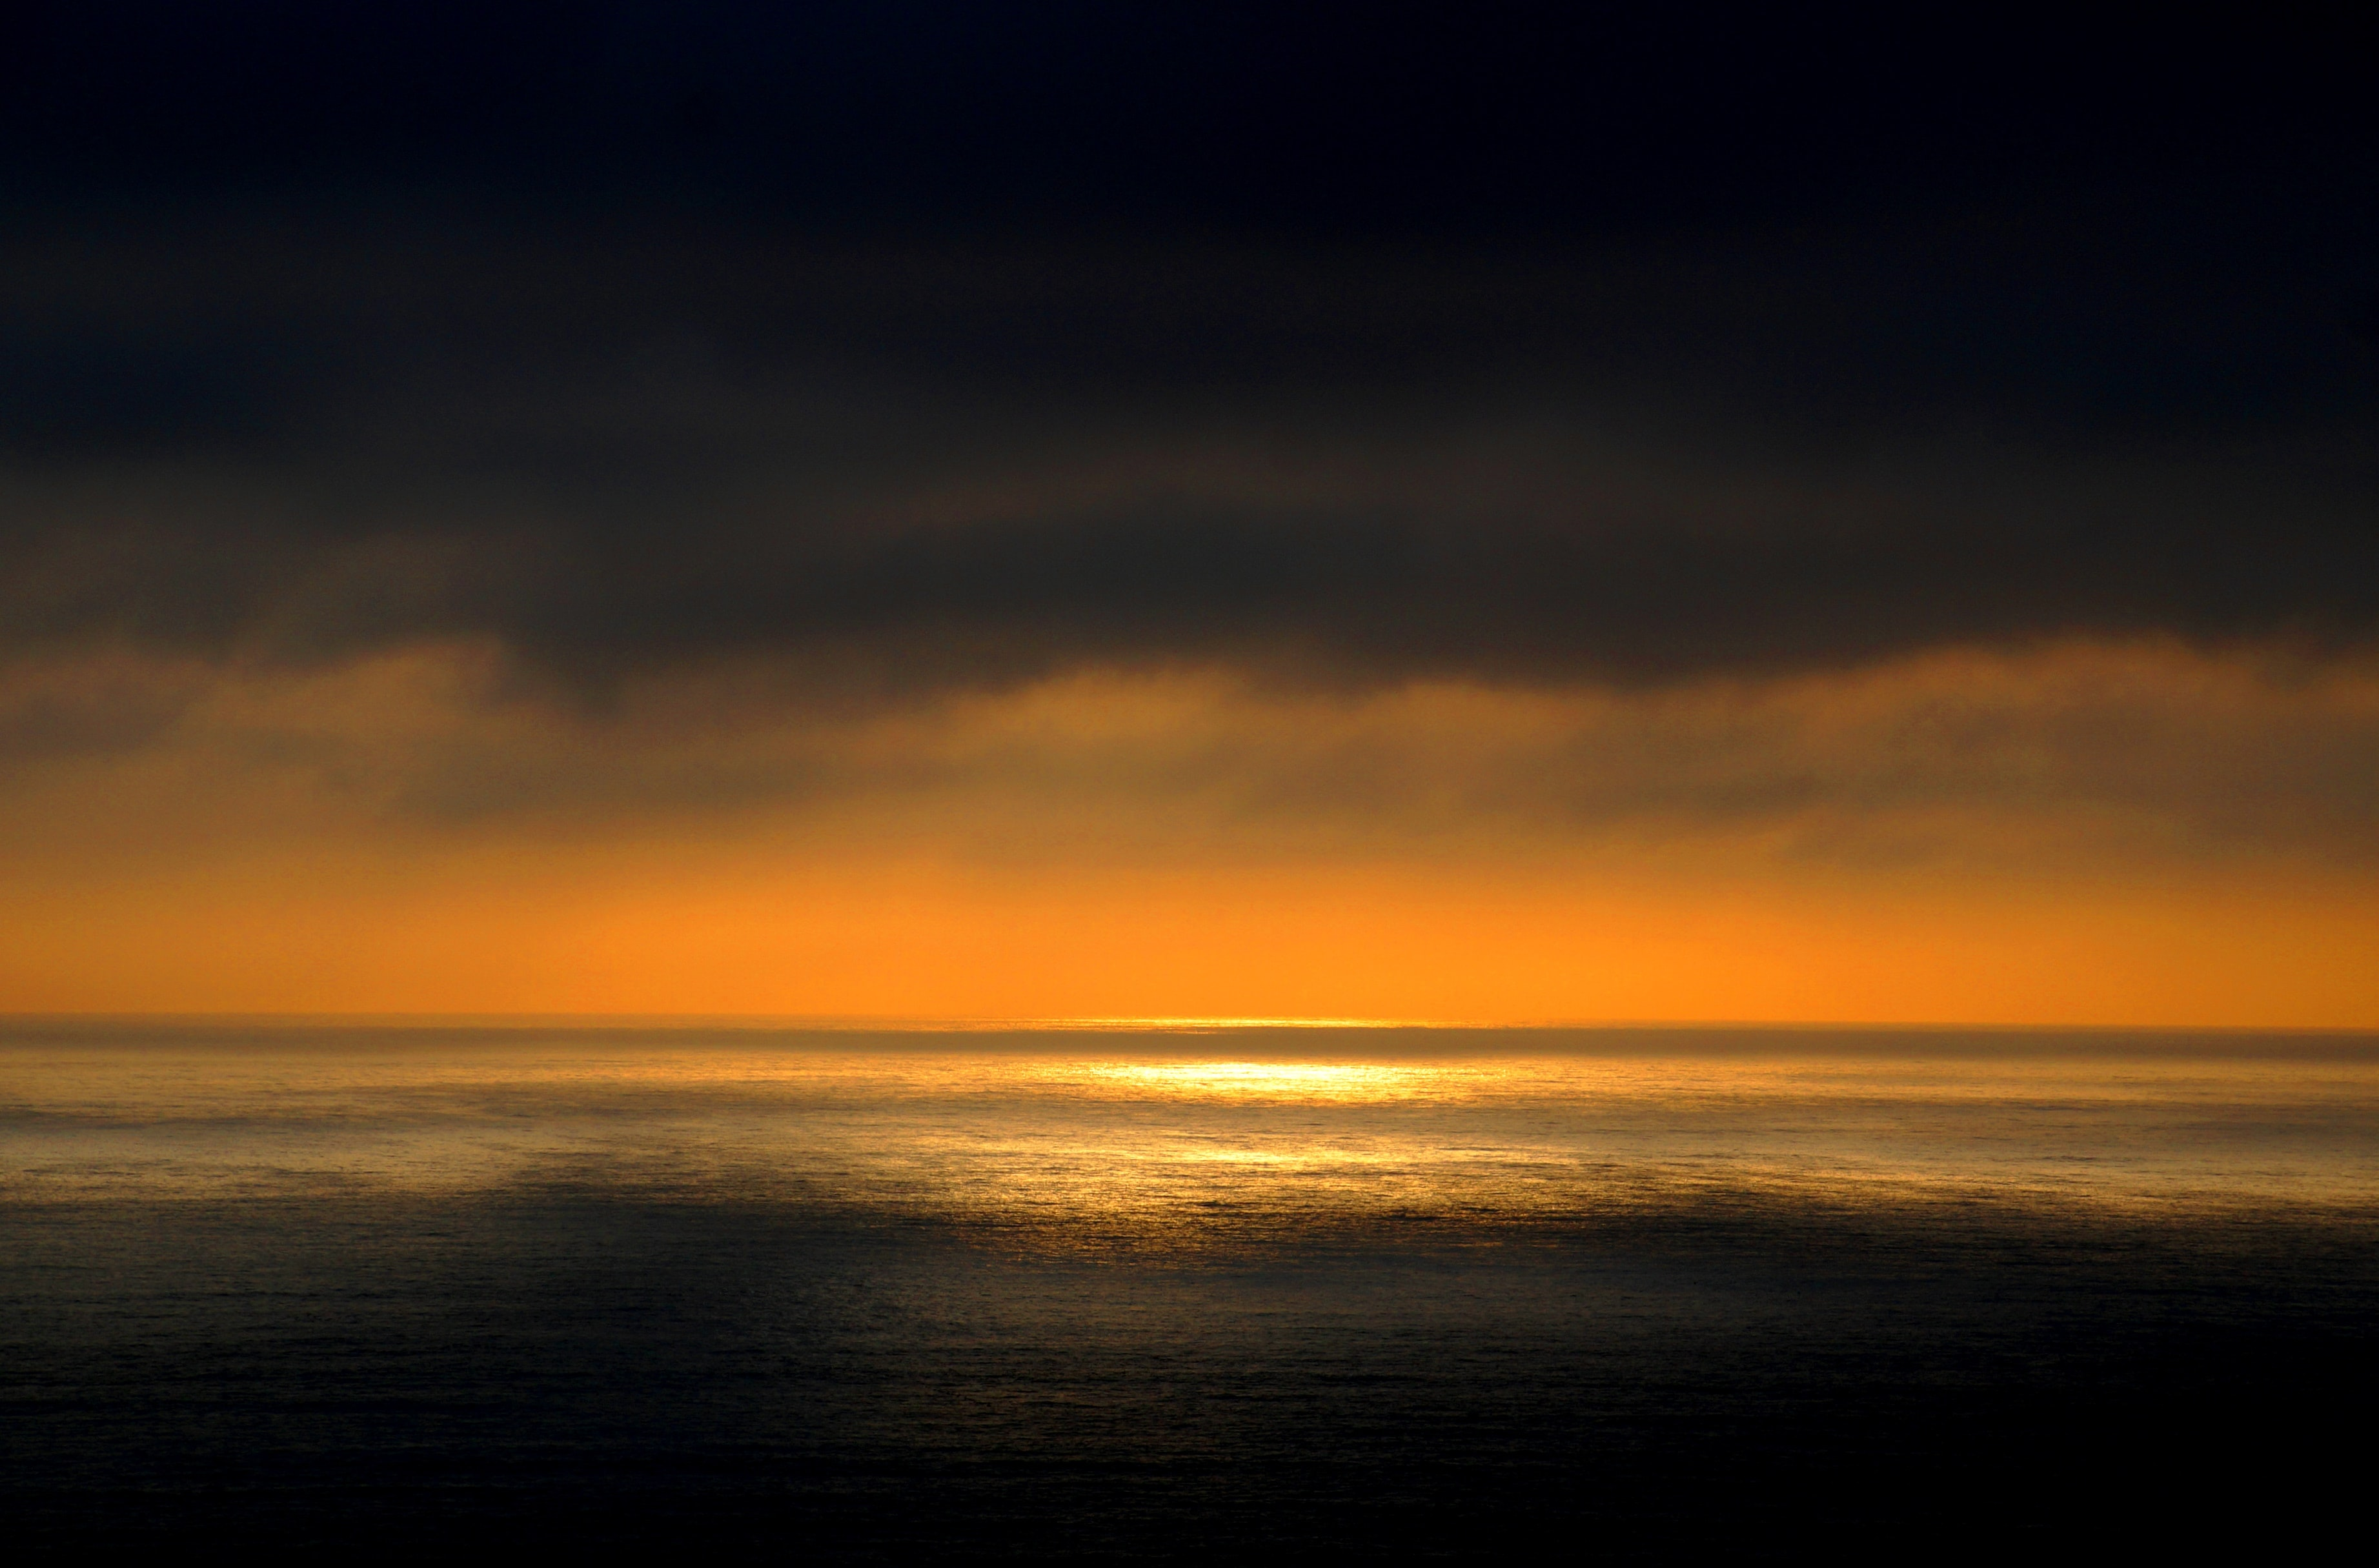 A dark and moody sunset over the ocean with yellow and orange rays on the horizon in Chile.